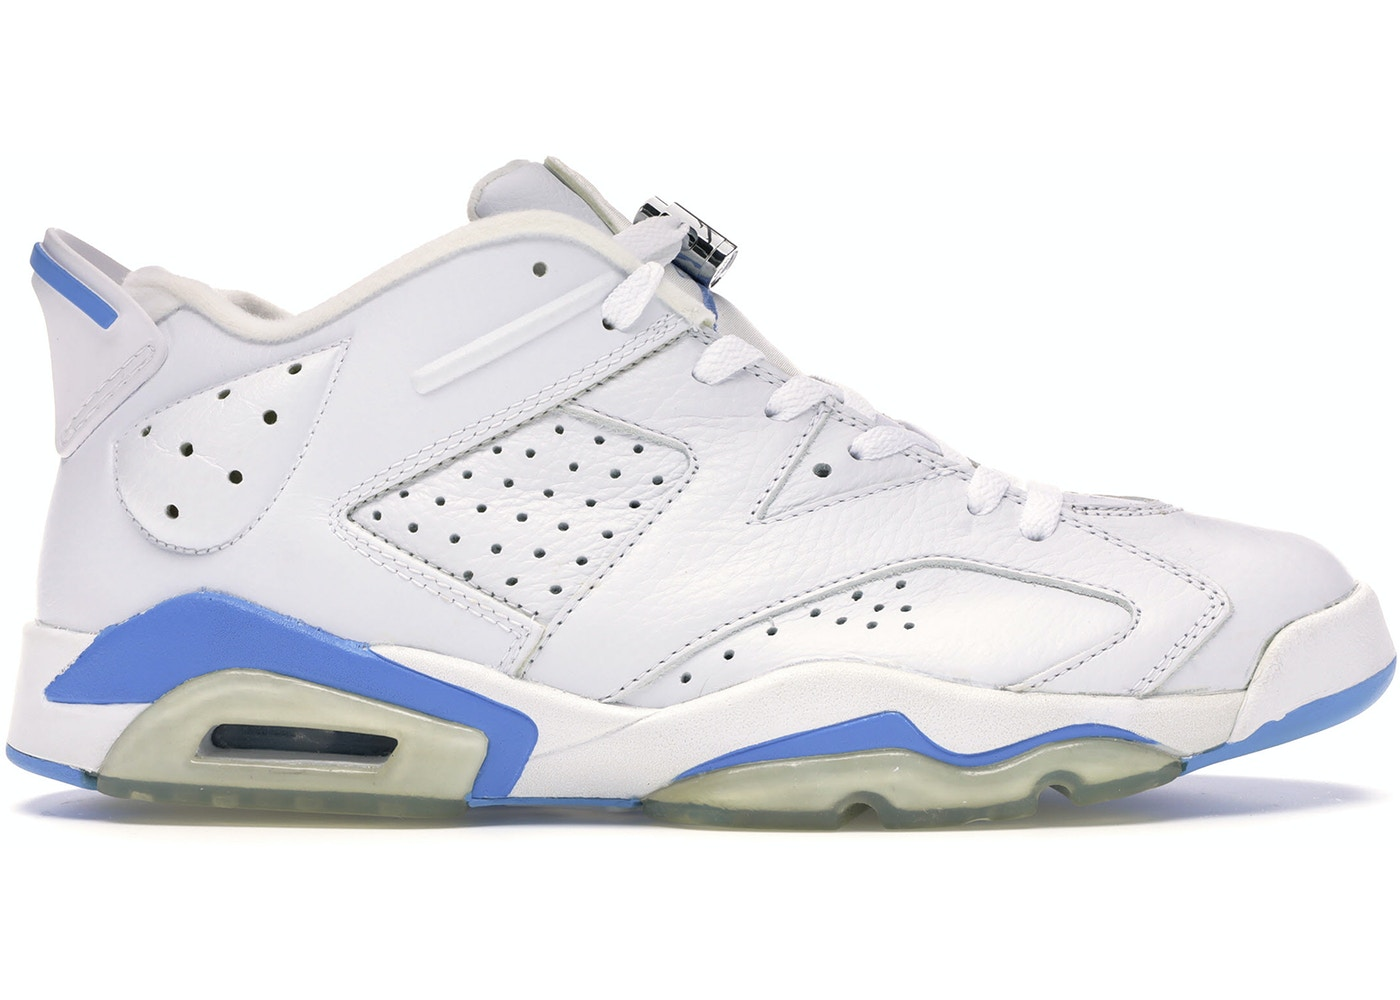 cheaper 2eb83 7596c Jordan 6 Retro Low University Blue